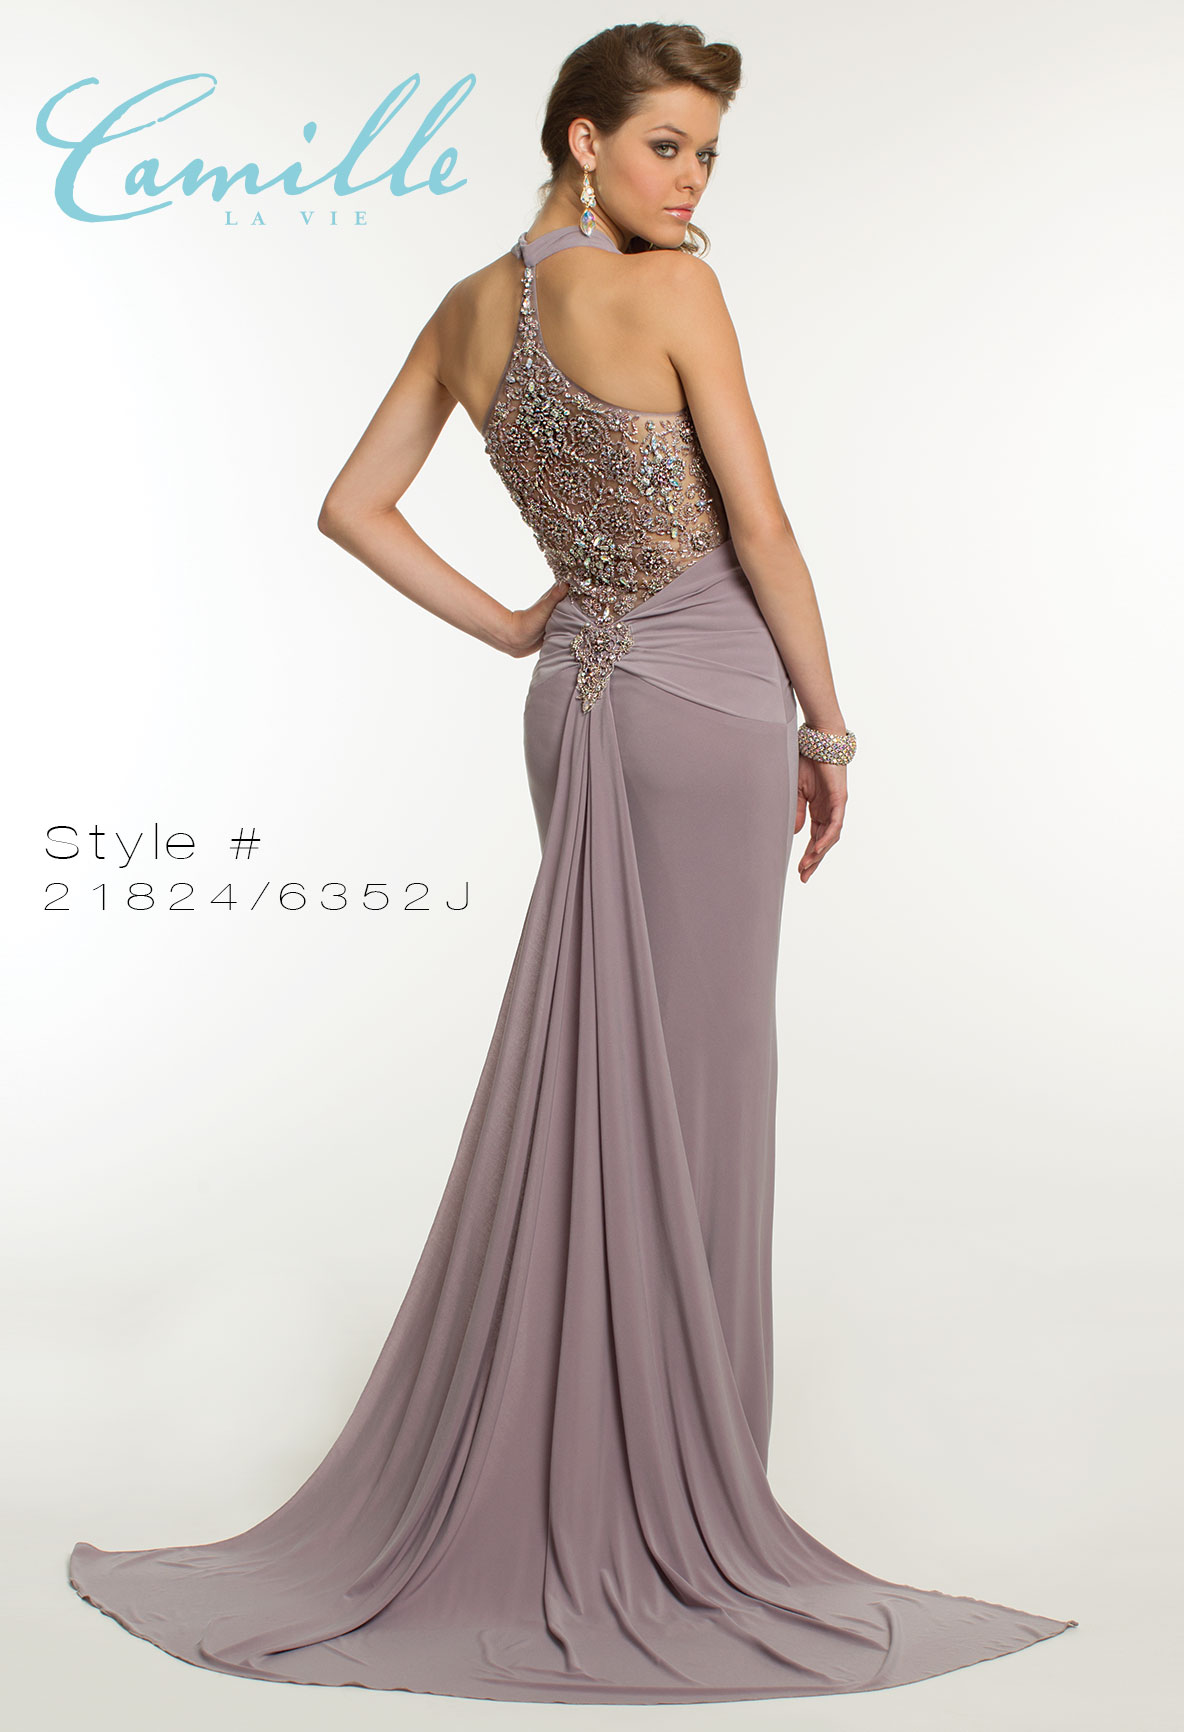 Usa Prom Dresses - Long Dresses Online